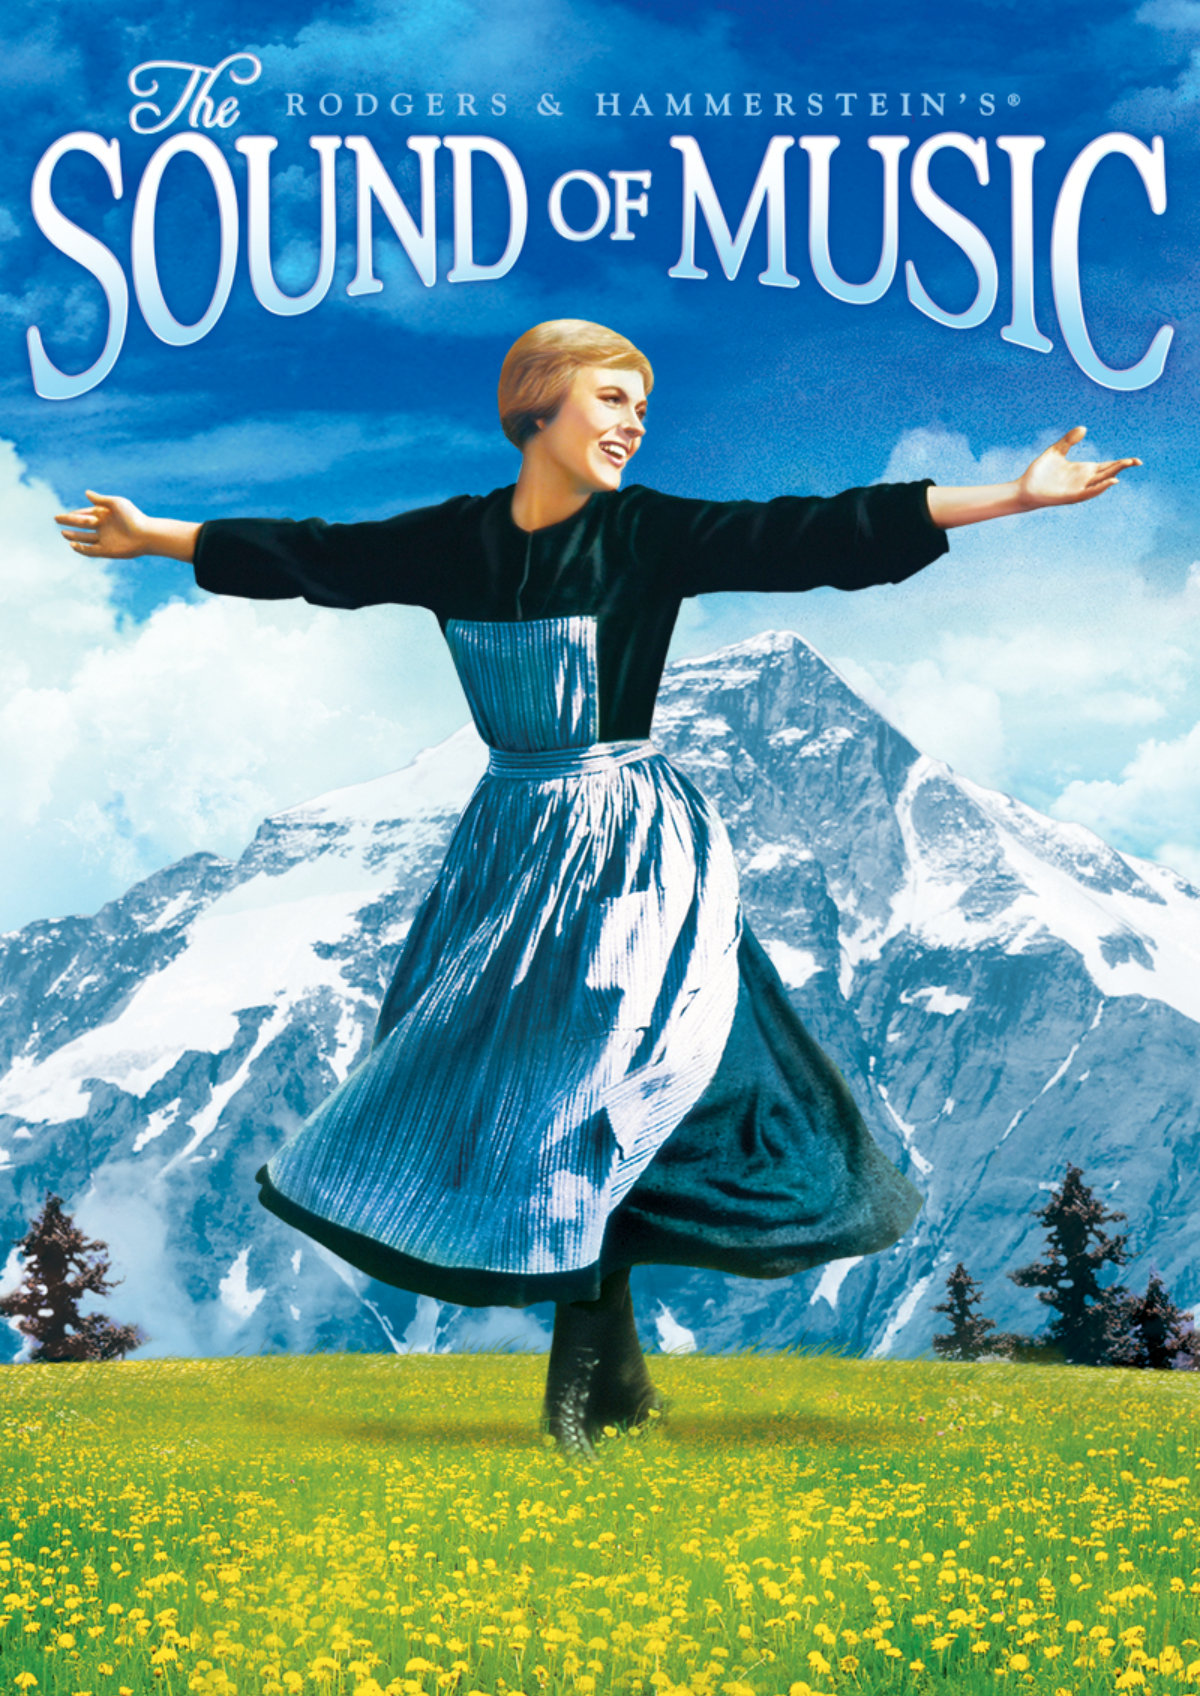 'The Sound of Music' movie poster